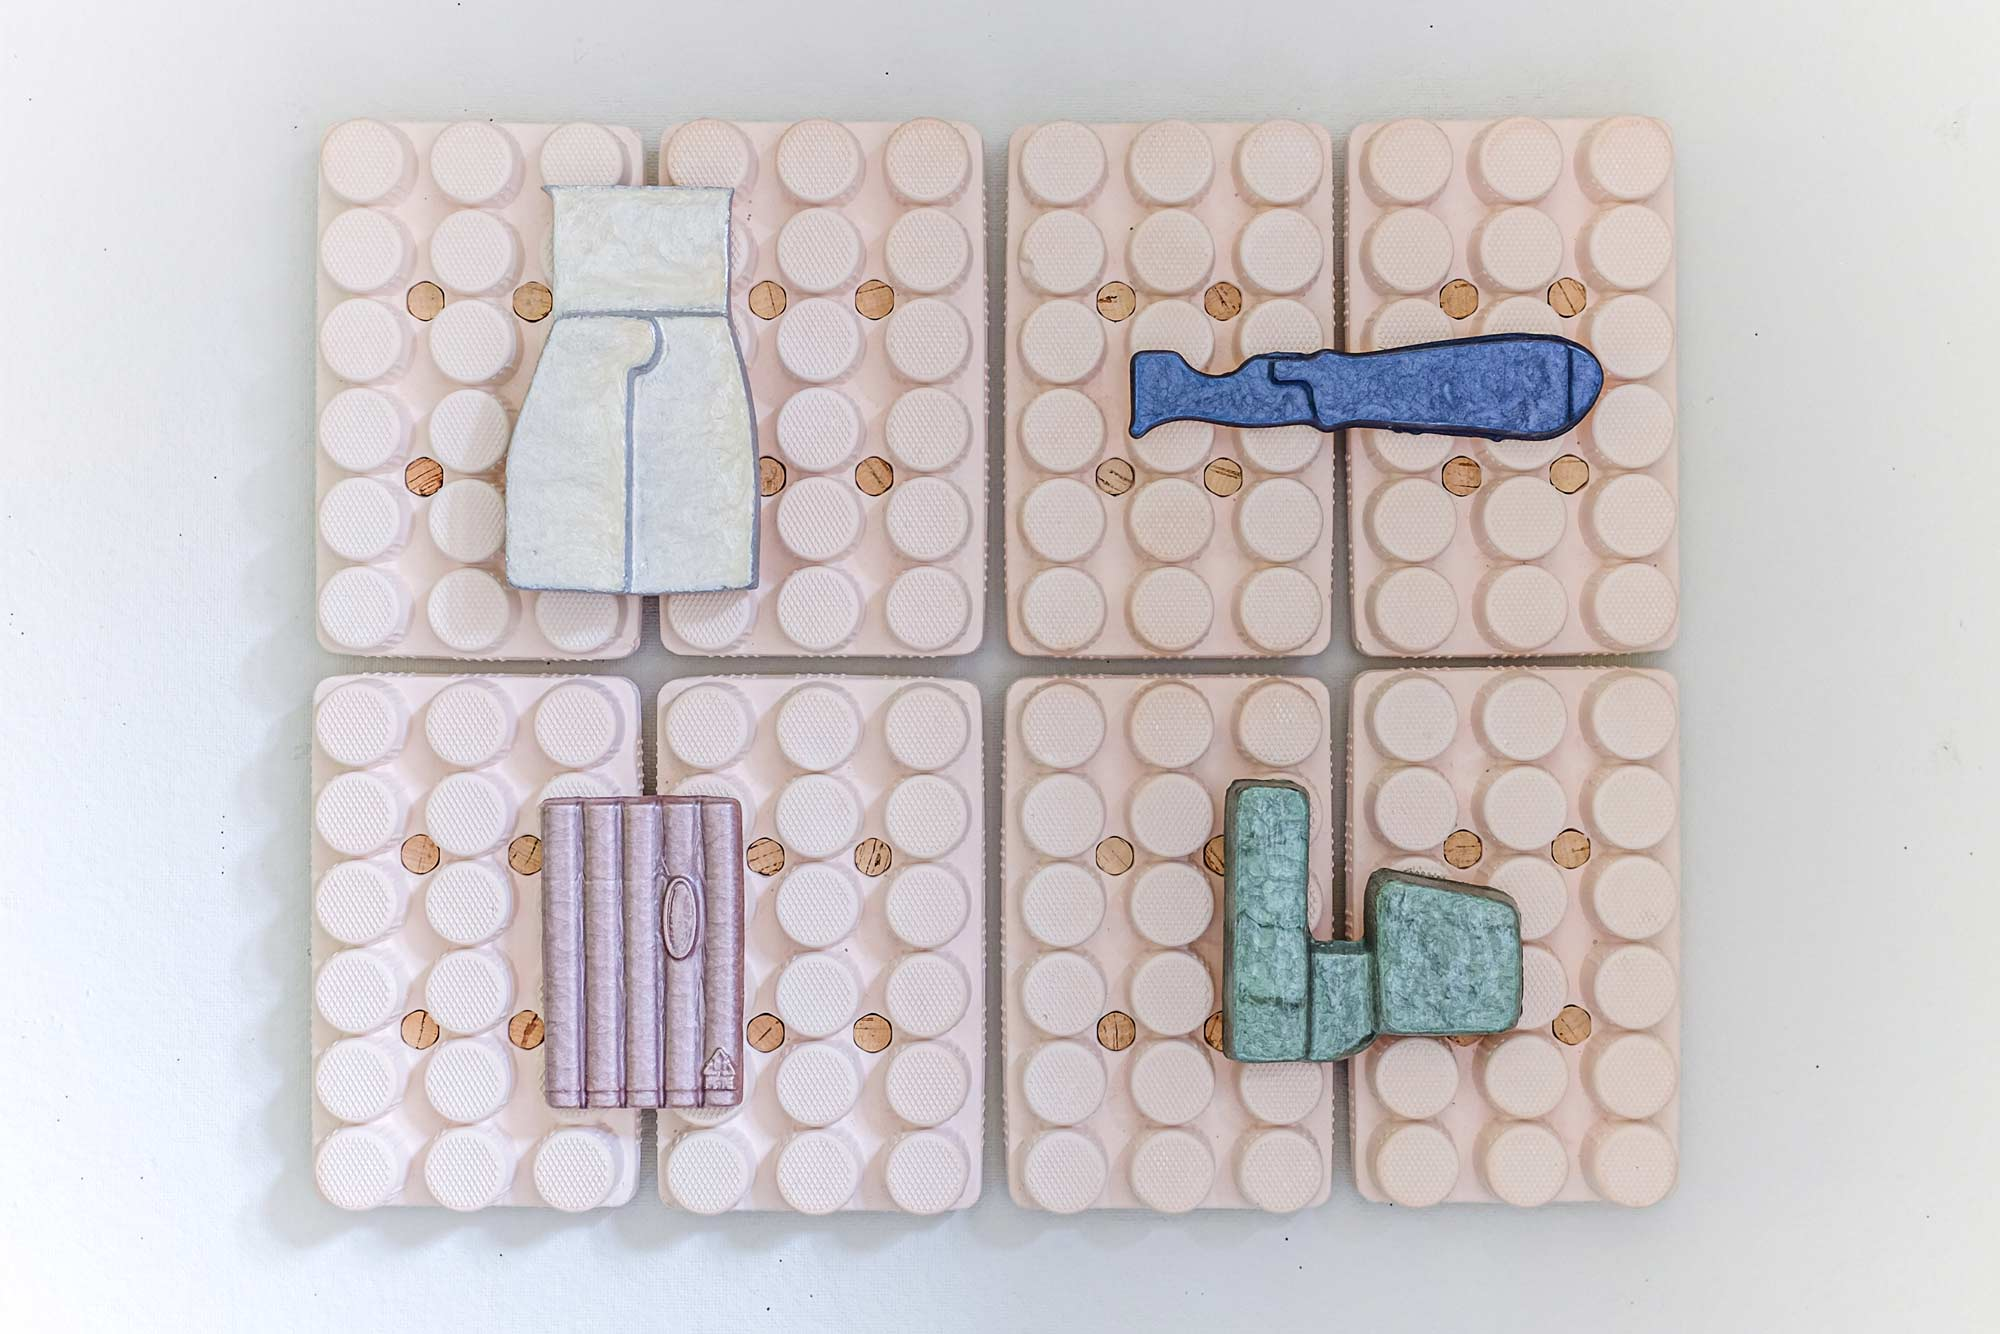 Four organic shapes in white, blue, pink, and green set into a surrounding rectangular pink sculpture with grid texture.